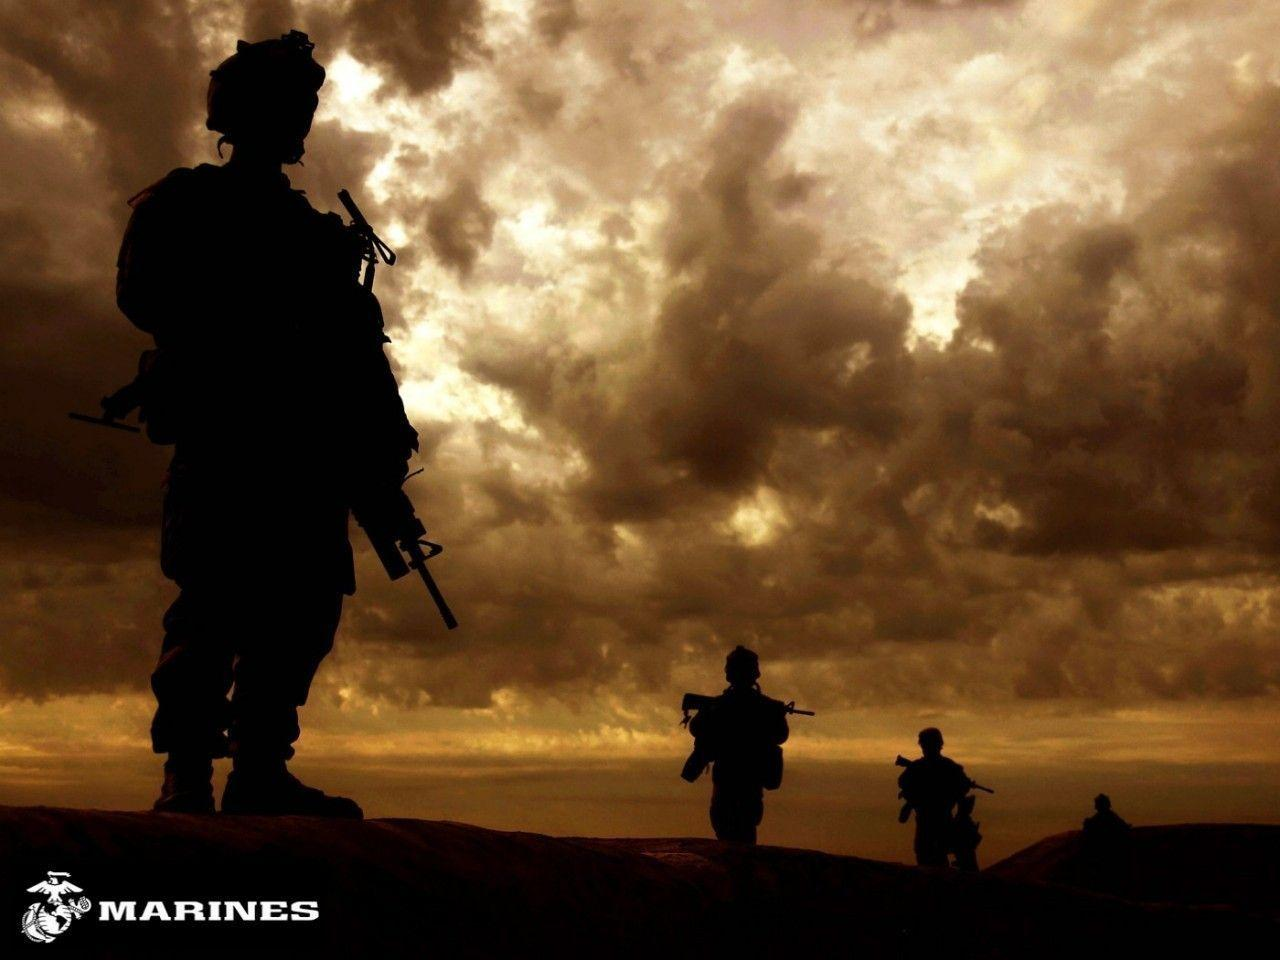 Us army infantry wallpapers wallpaper cave - Military wallpaper army ...